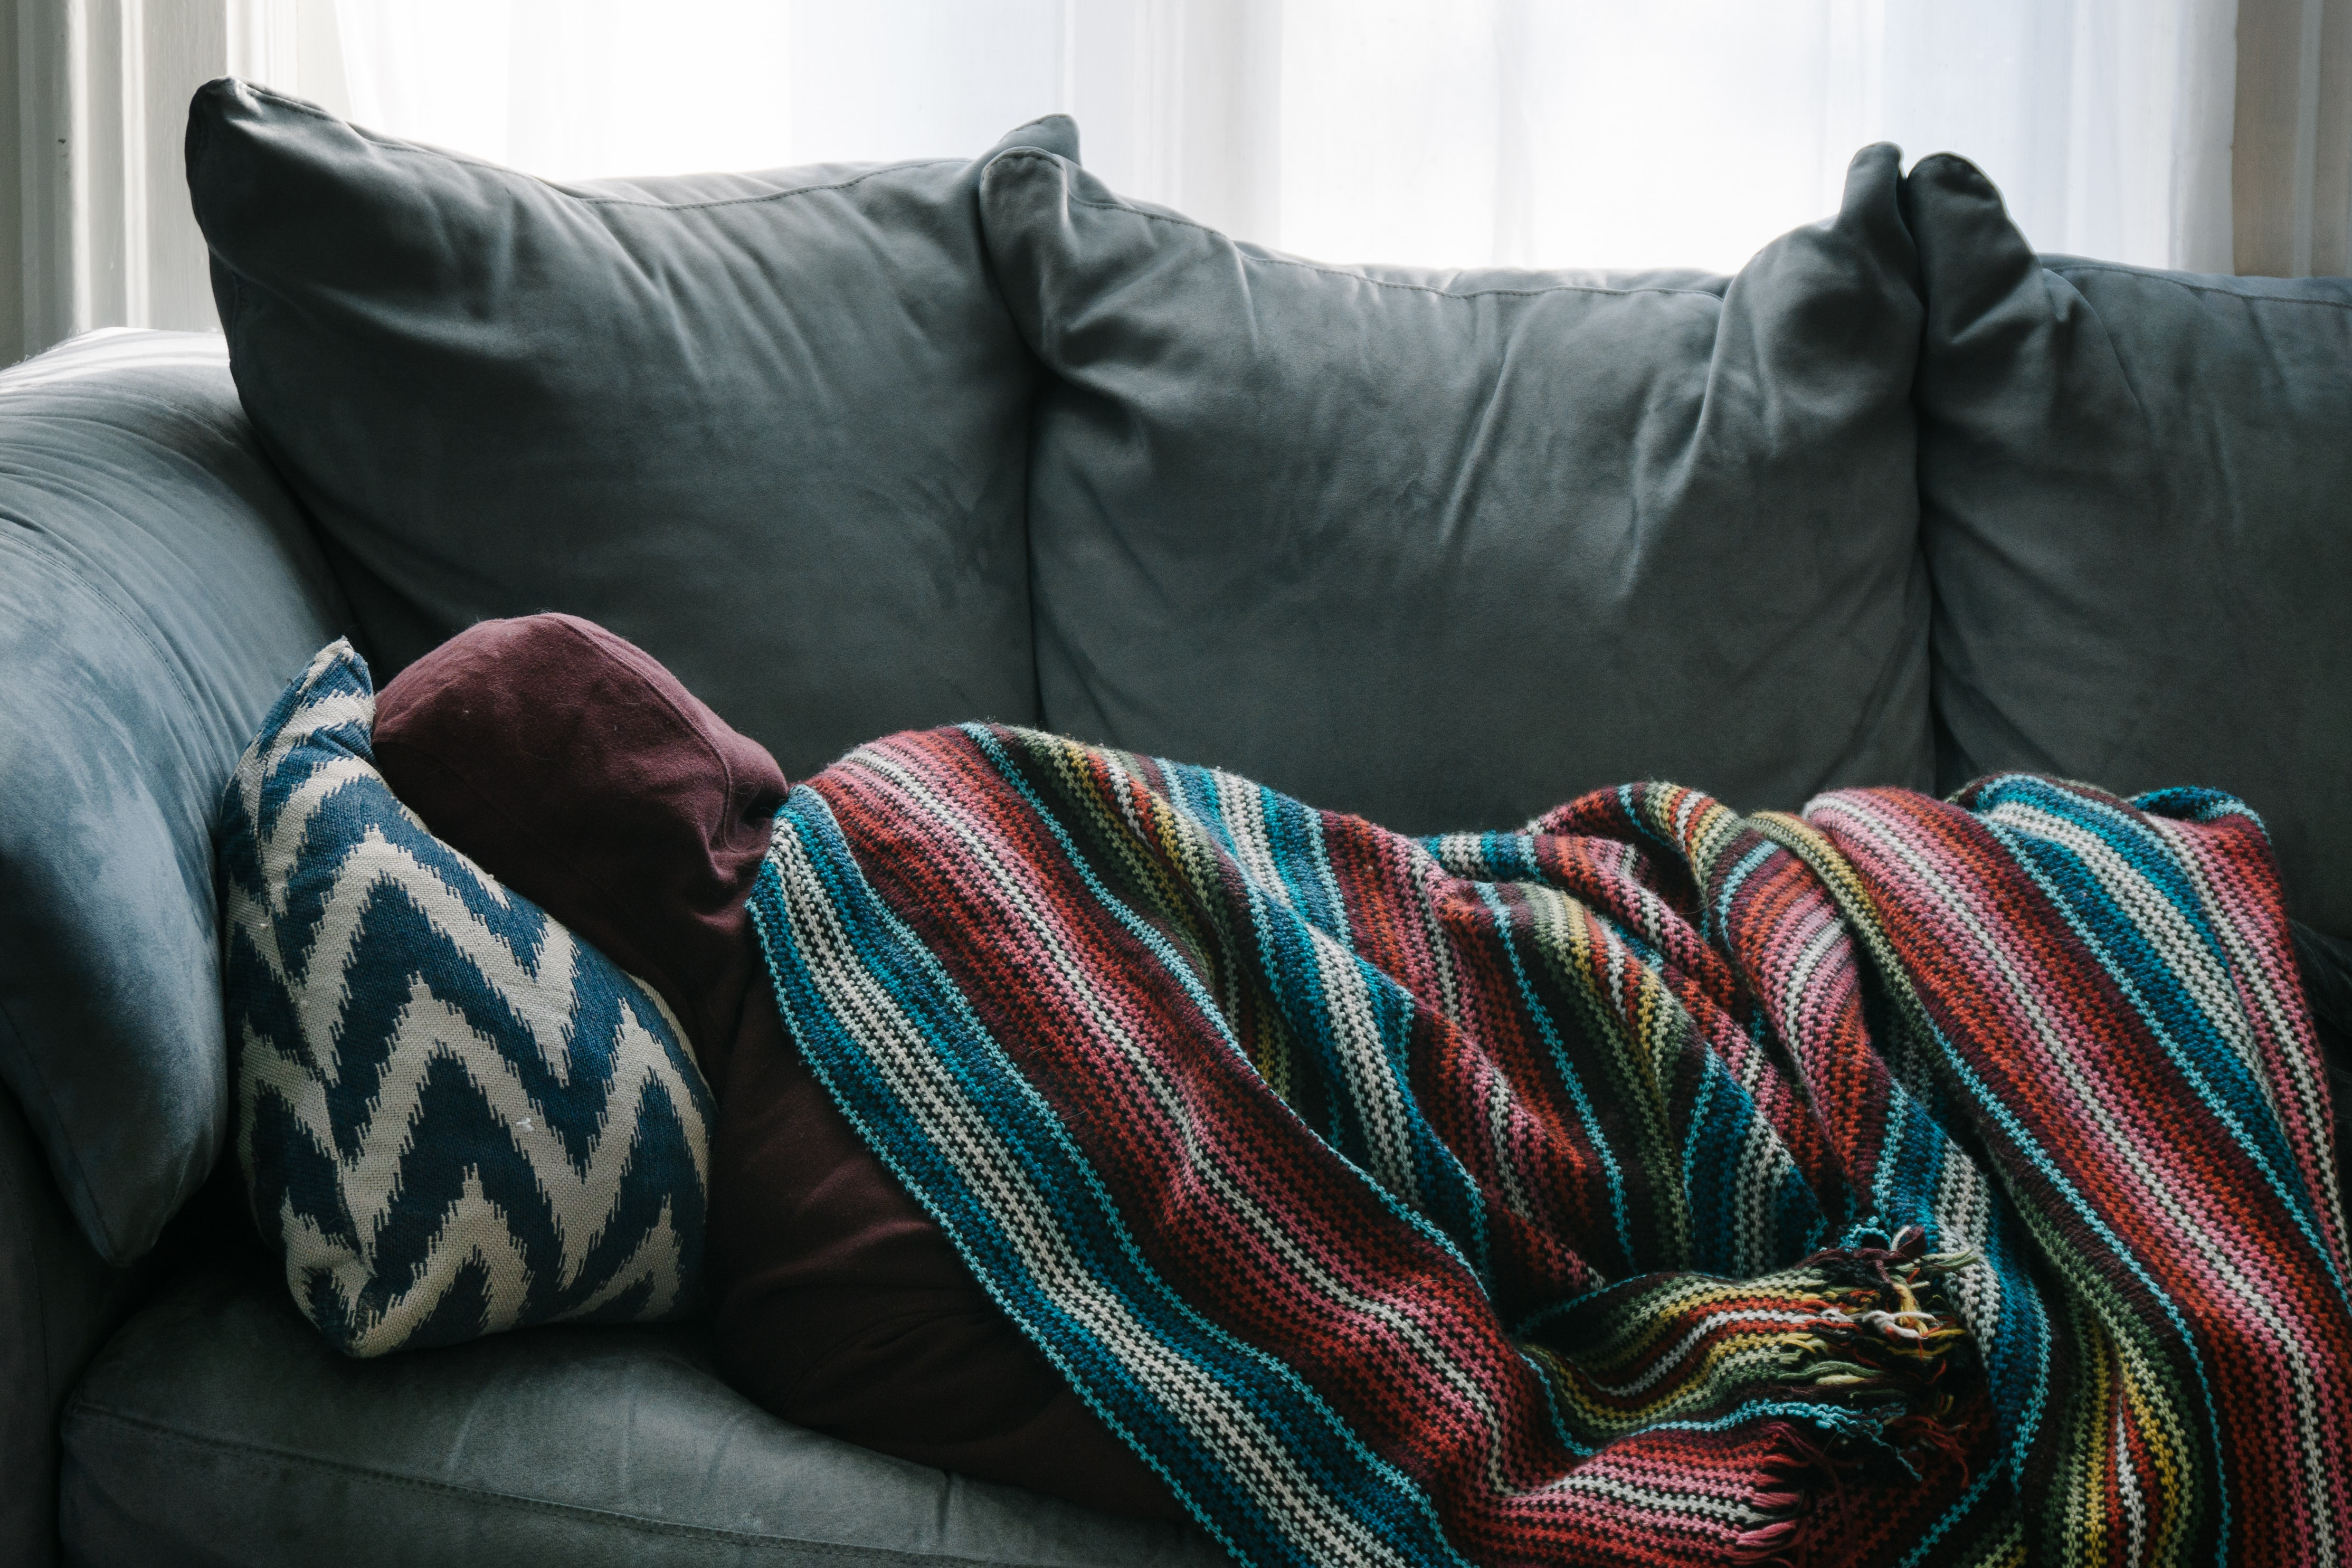 Taking Care of Your Dental Health While You're Sick